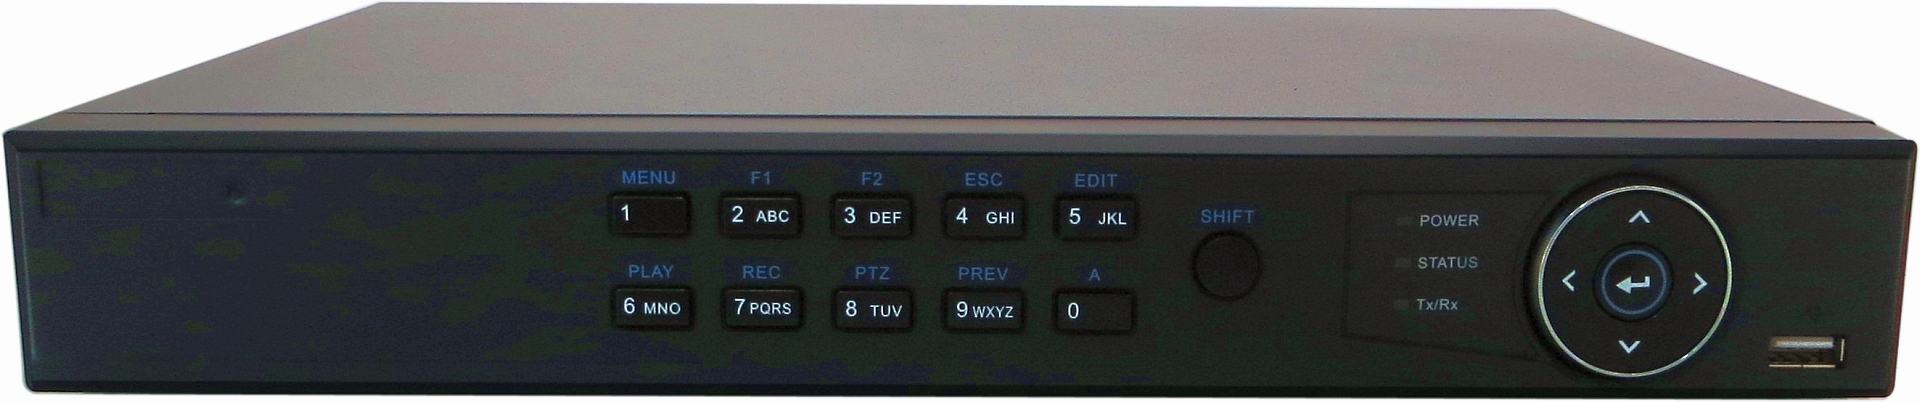 eSecure 8 Channel Tribrid DVR: HD-TVI / Analog 960H / IP Hybrid